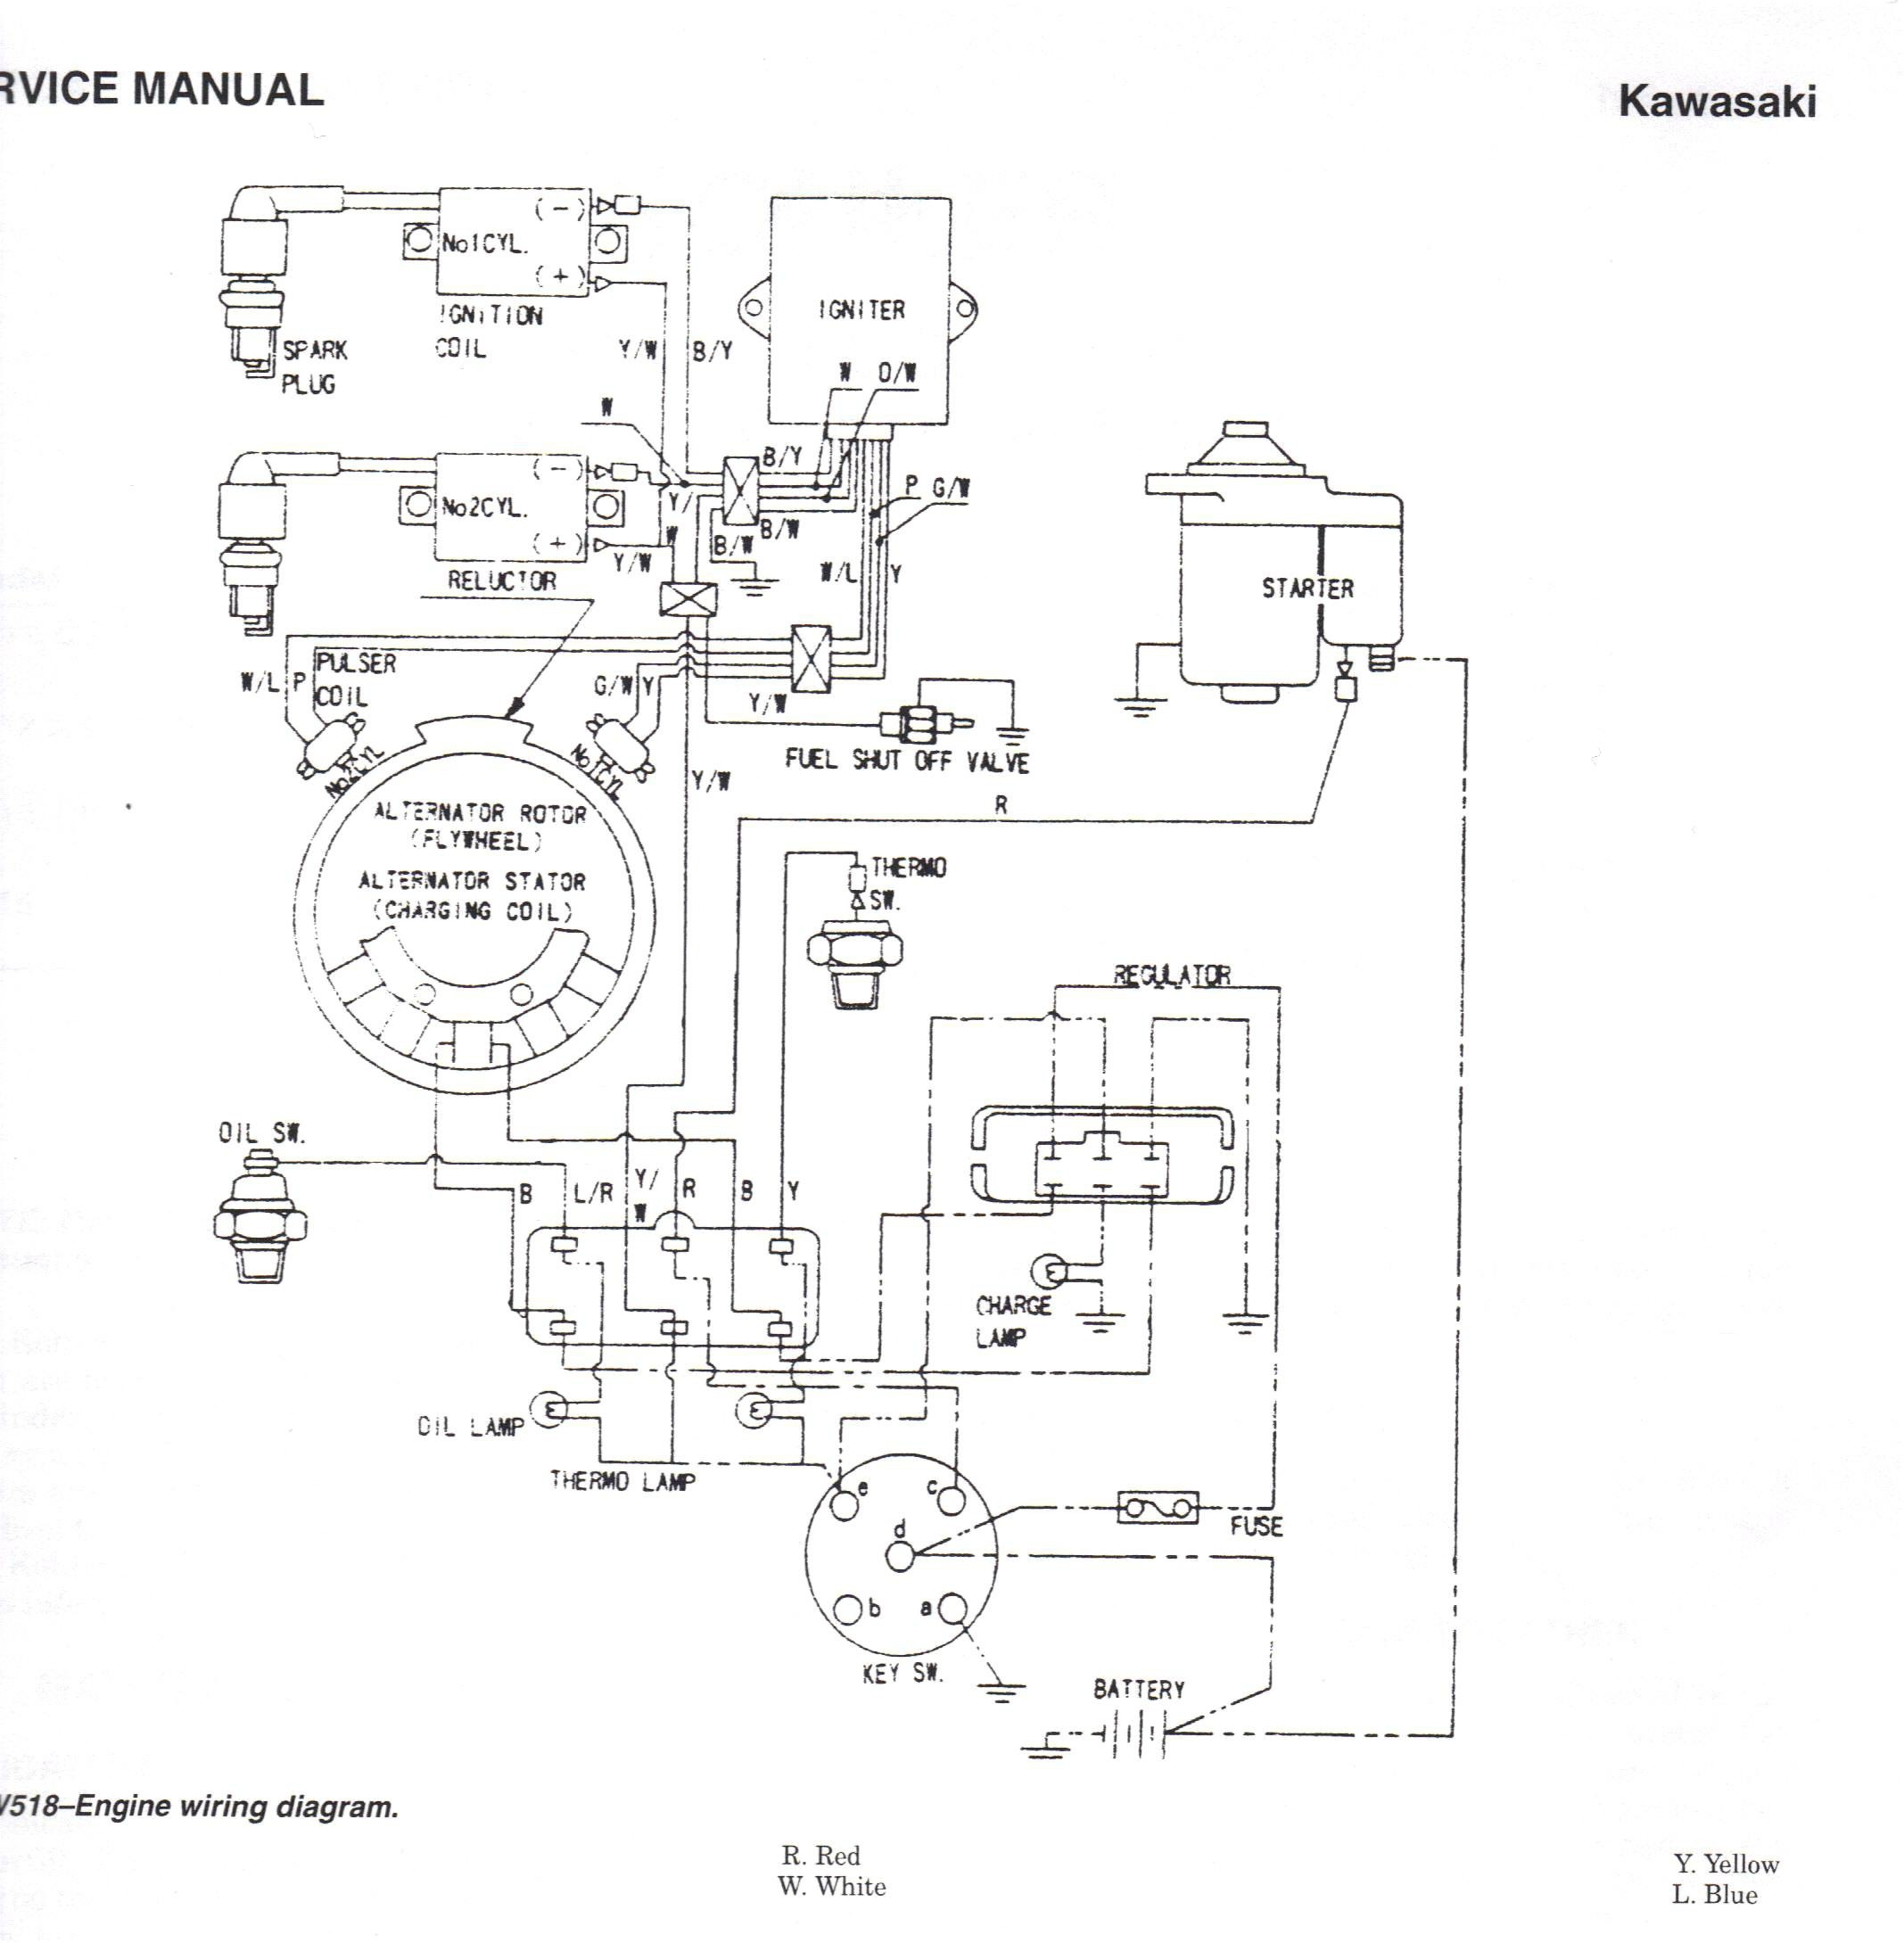 Wiring Diagram Intek Engine likewise 486278 W211 Fuses Relays Sam Modules Chart furthermore John Deere 4440 Wiring Diagram in addition 2006 Chevy Silverado Blower Motor Resistor Wiring Diagram besides 2008 E250 Starter Motor Wiring Diagram. on blower motor wiring diagram